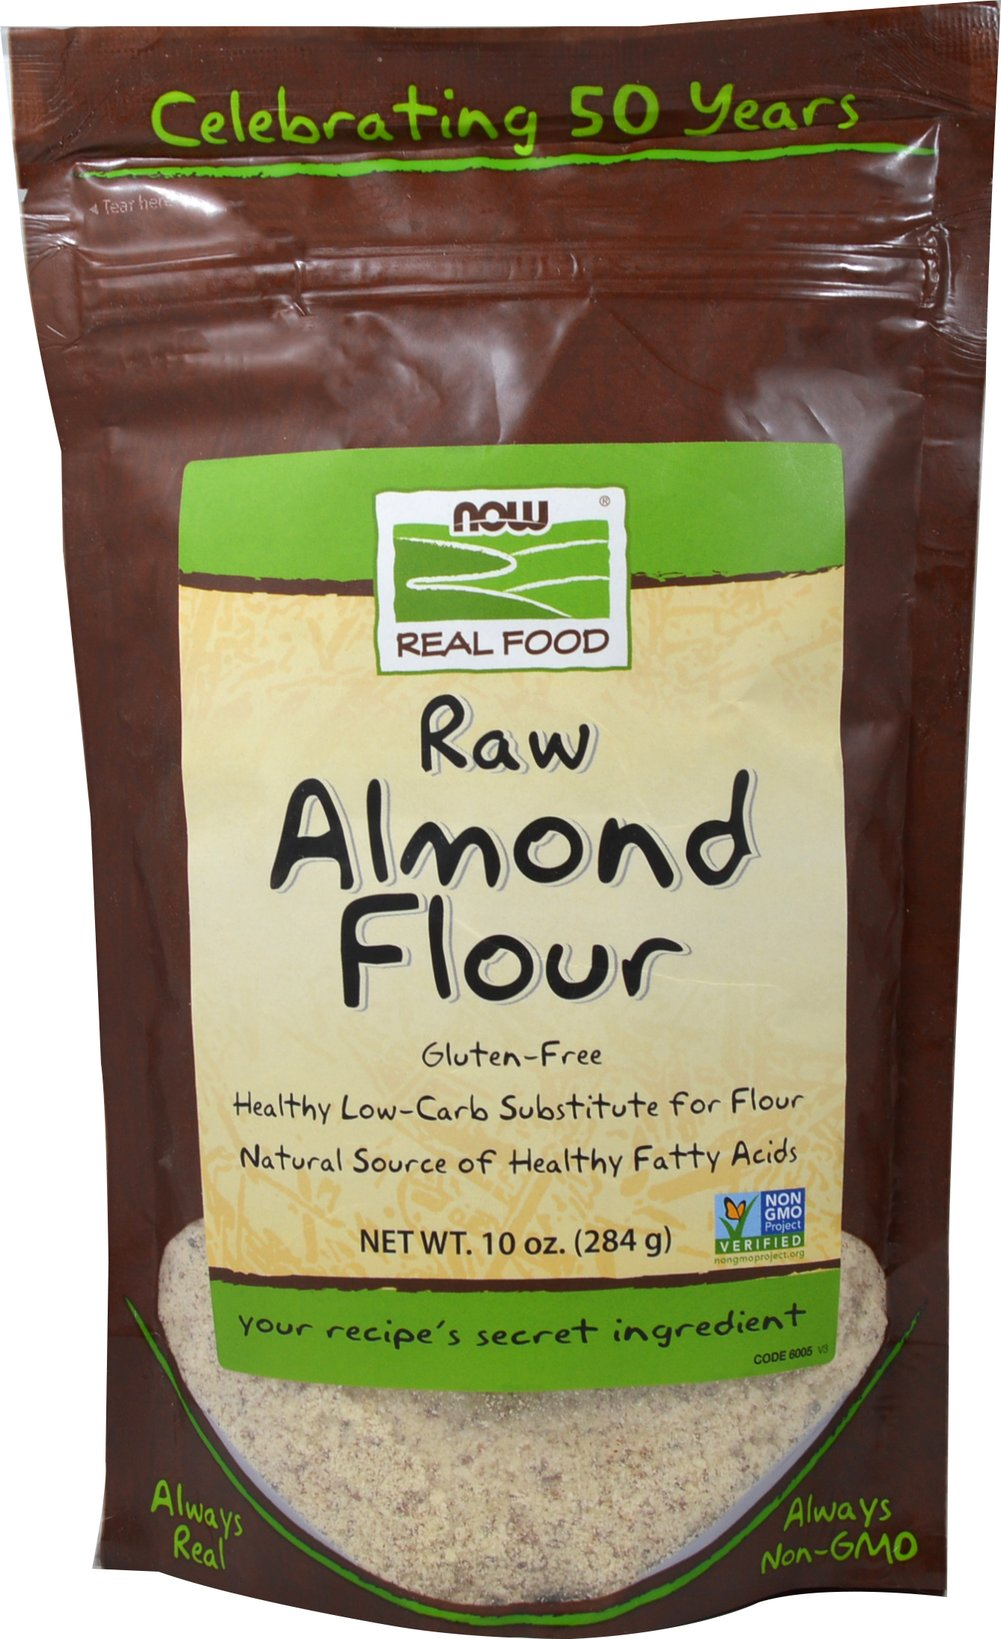 Almond Flour <p><strong>From the Manufacturer: </strong></p><p>Now Foods Almond Flour is an unblanched, gluten-free flour that is an excellent low-carb substitute for other flours used in baking, either wholly or in part. With Almond Flour, you can add color, texture, richness, and flavor to your baked goods as well as everyday meals.</p> 10 oz Bag  $10.99